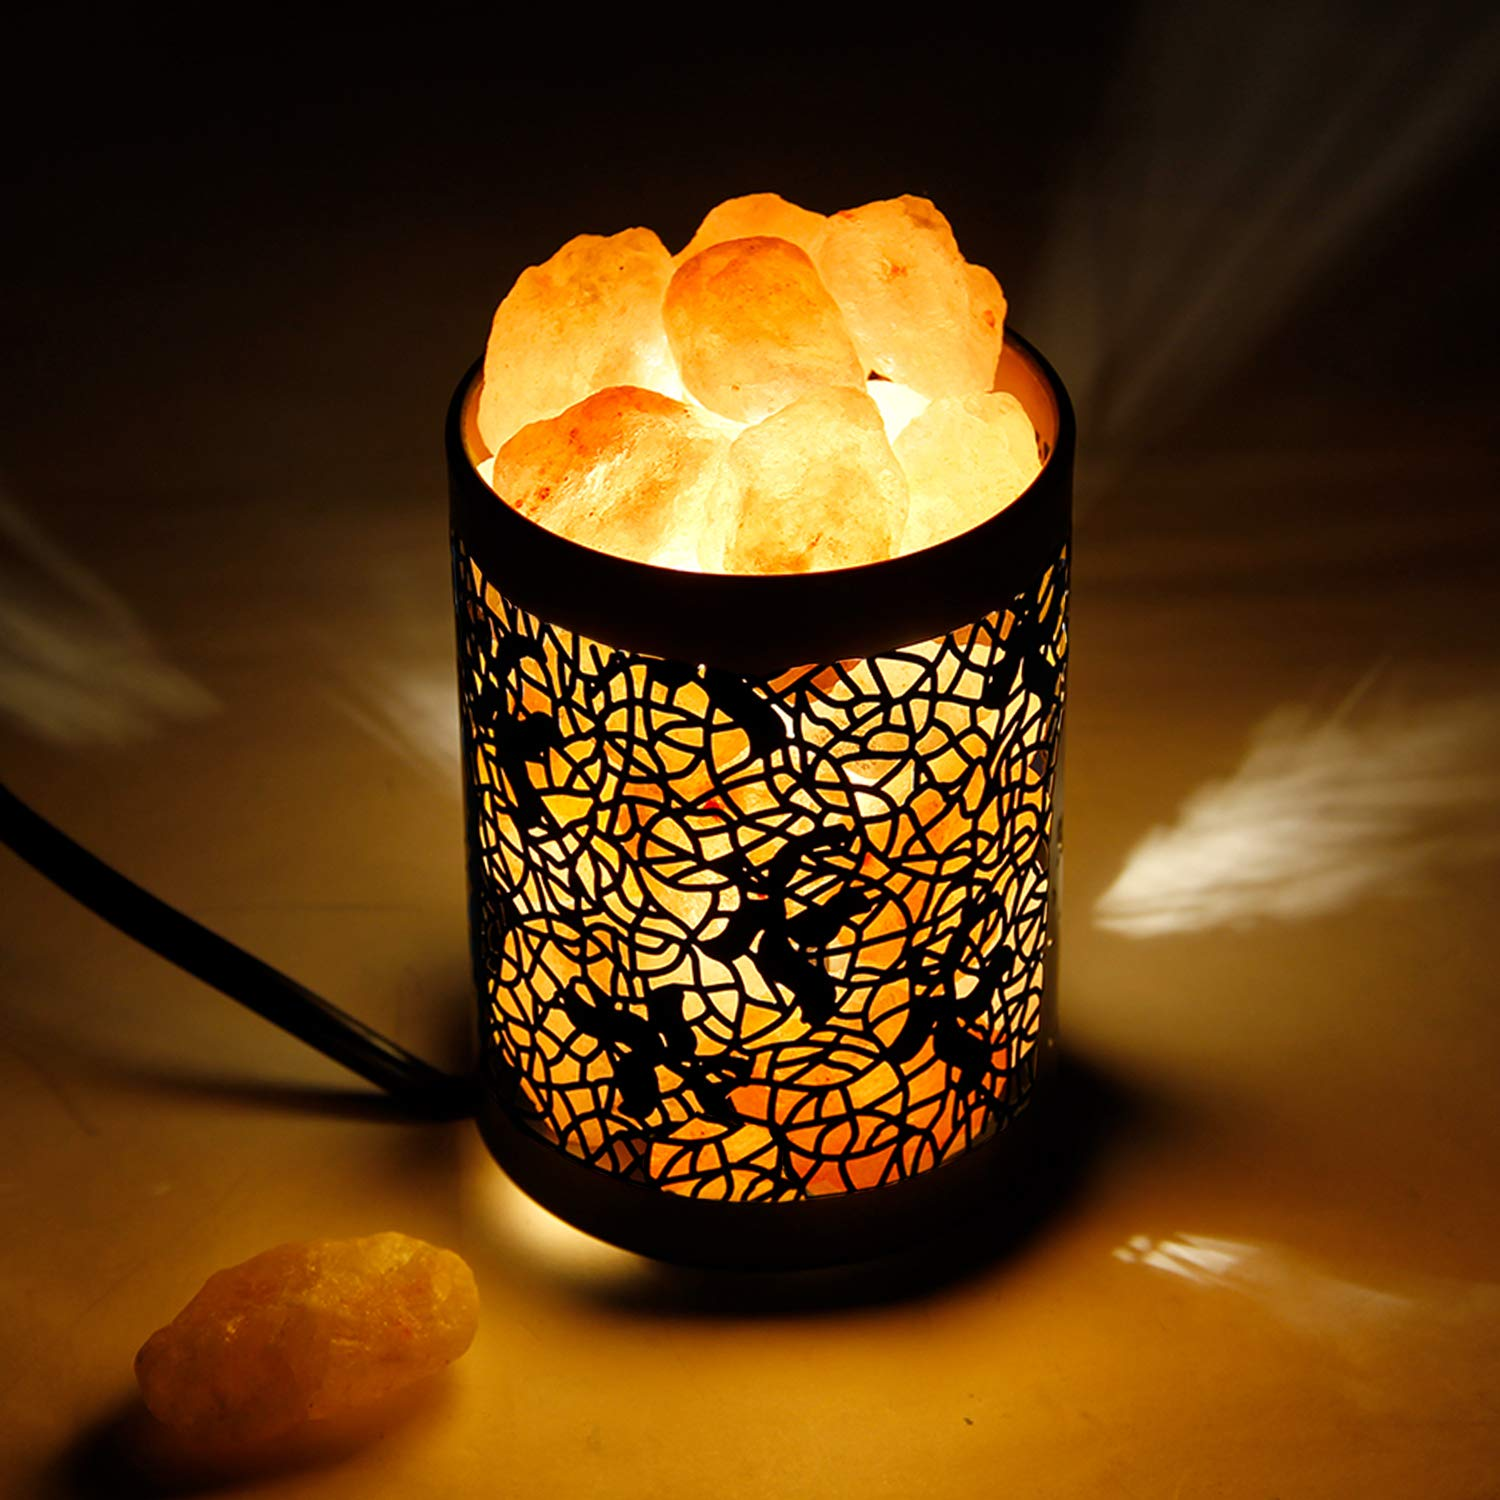 Himilian Pink Salt Lamps, OxyLED Himalayan Sea Salt Lamp, Natural Himalayan Salt Night Lights, Salt Crystal Light with Modern Design Metal Basket Lampshade (Two E14 Salt Light Bulbs Included) D03-1686A-04